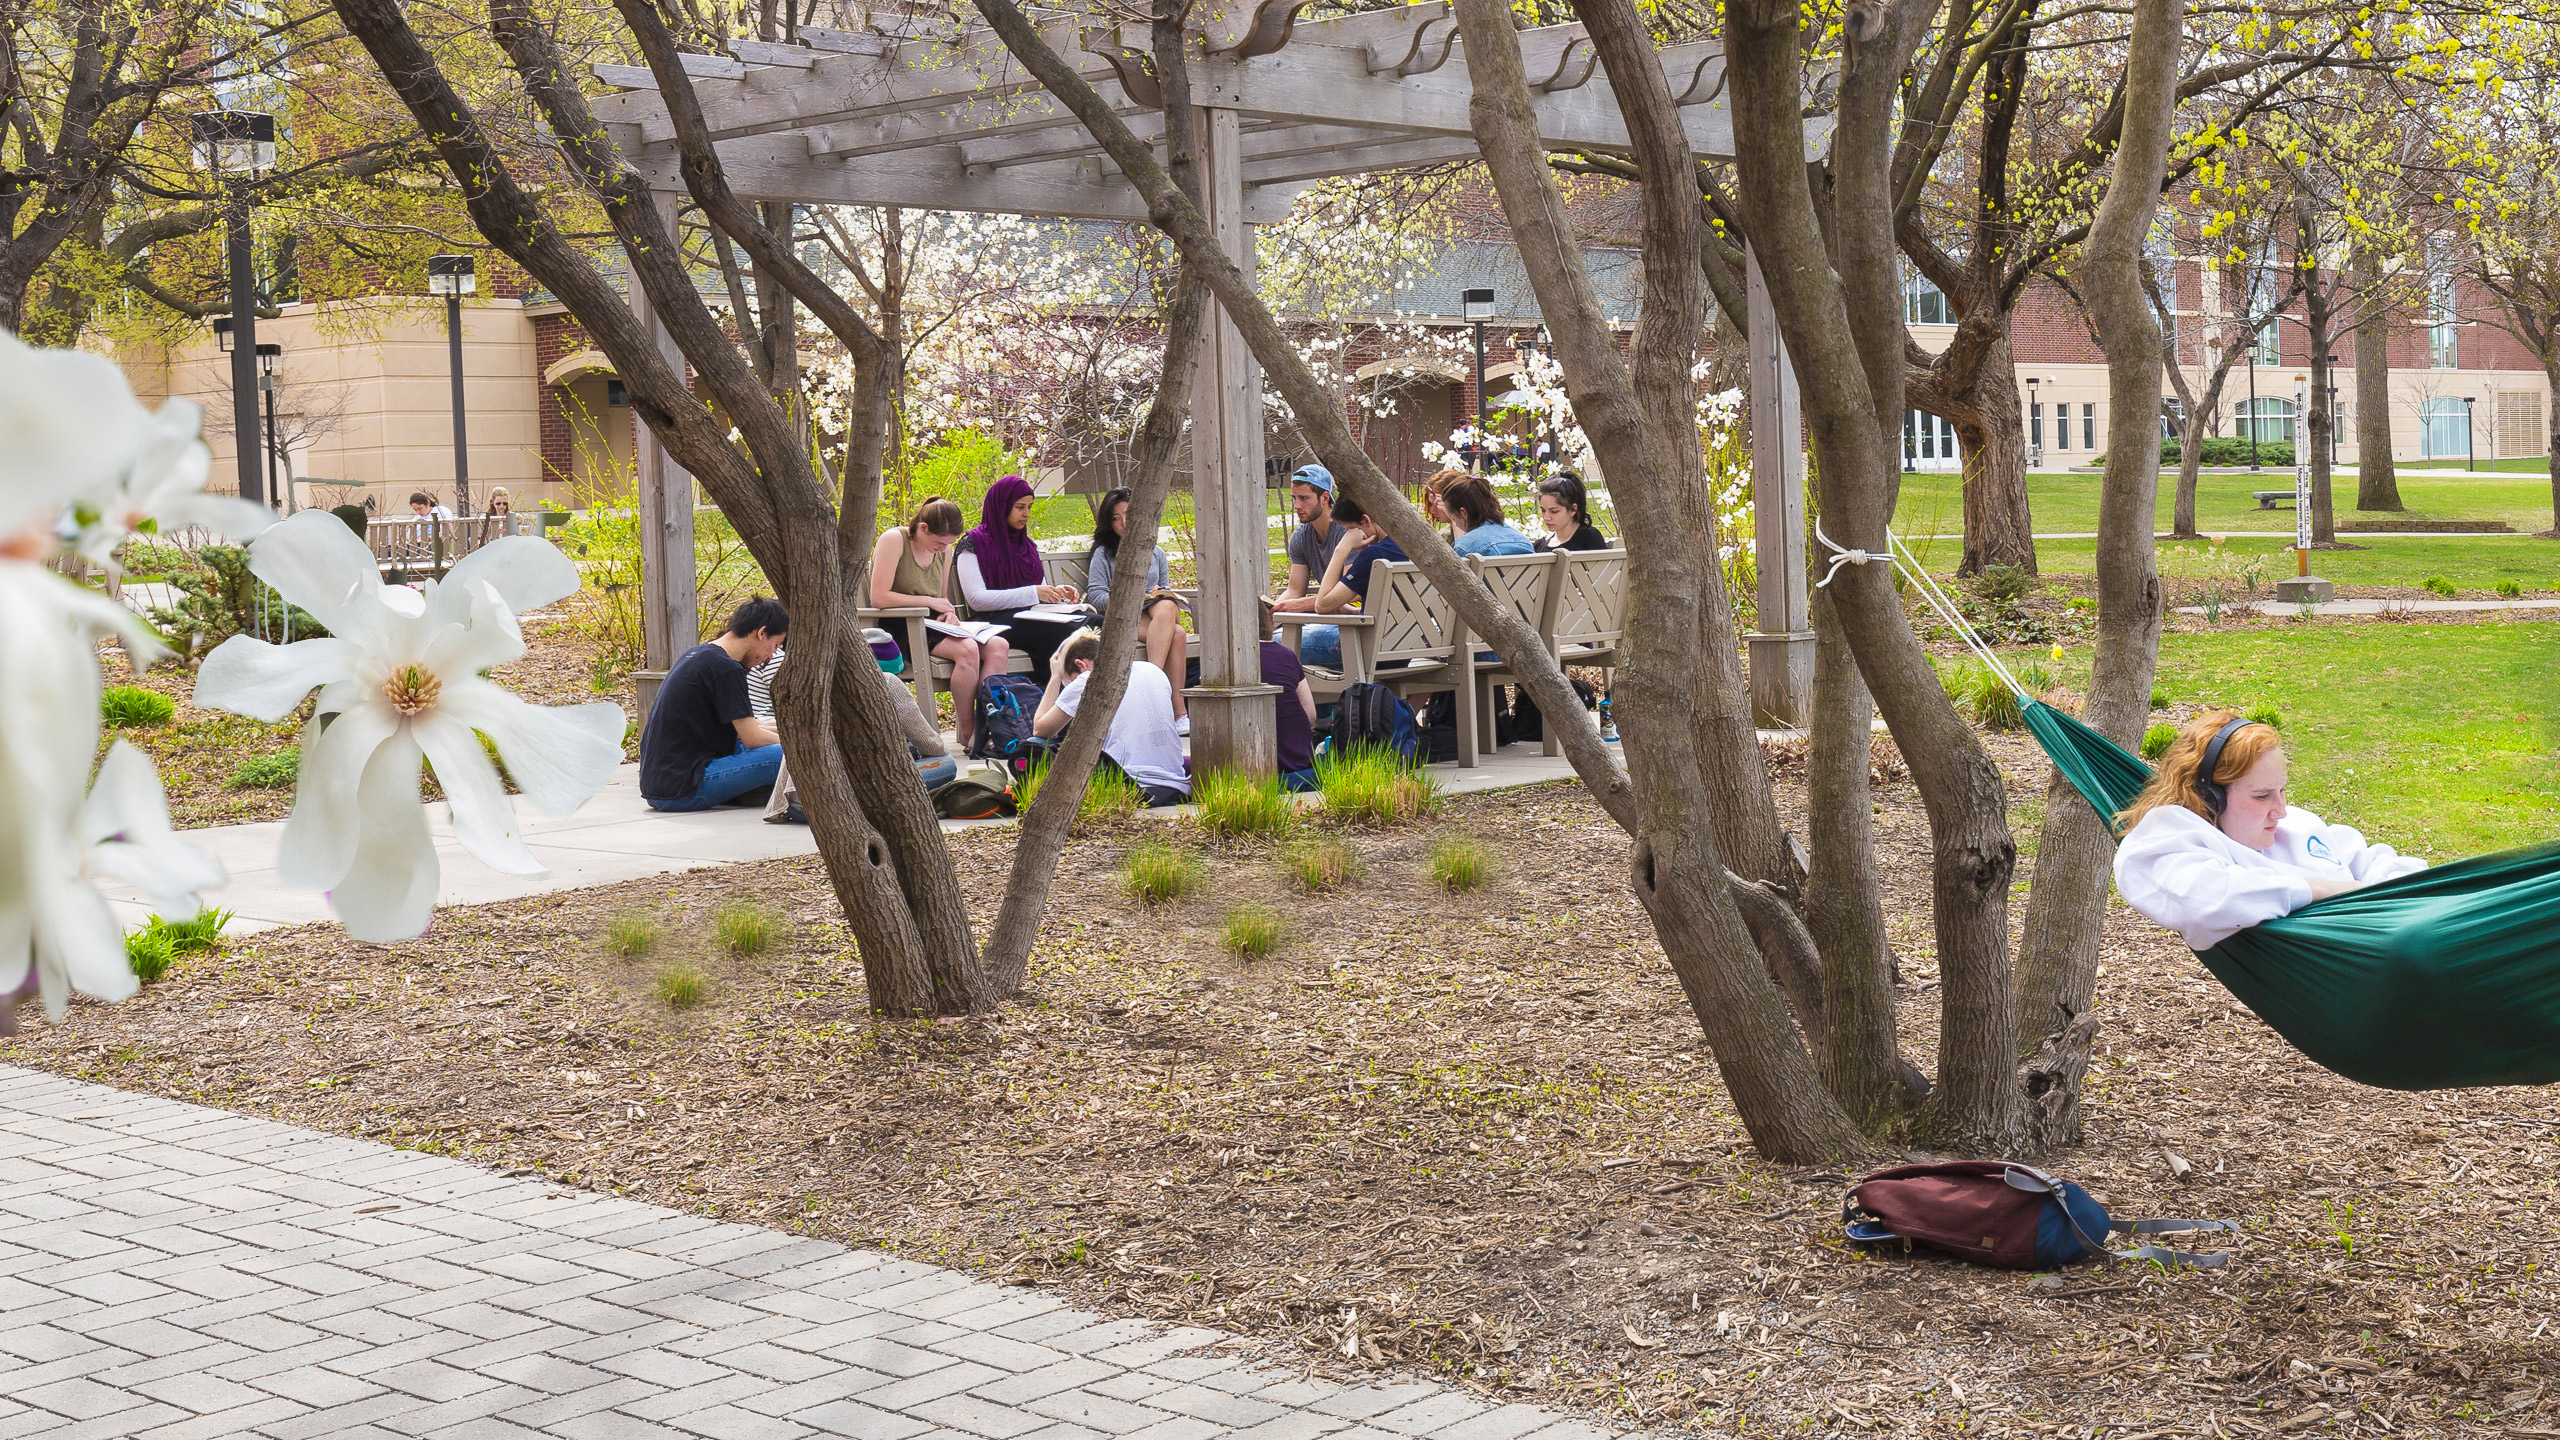 Students gathering on campus in springtime.